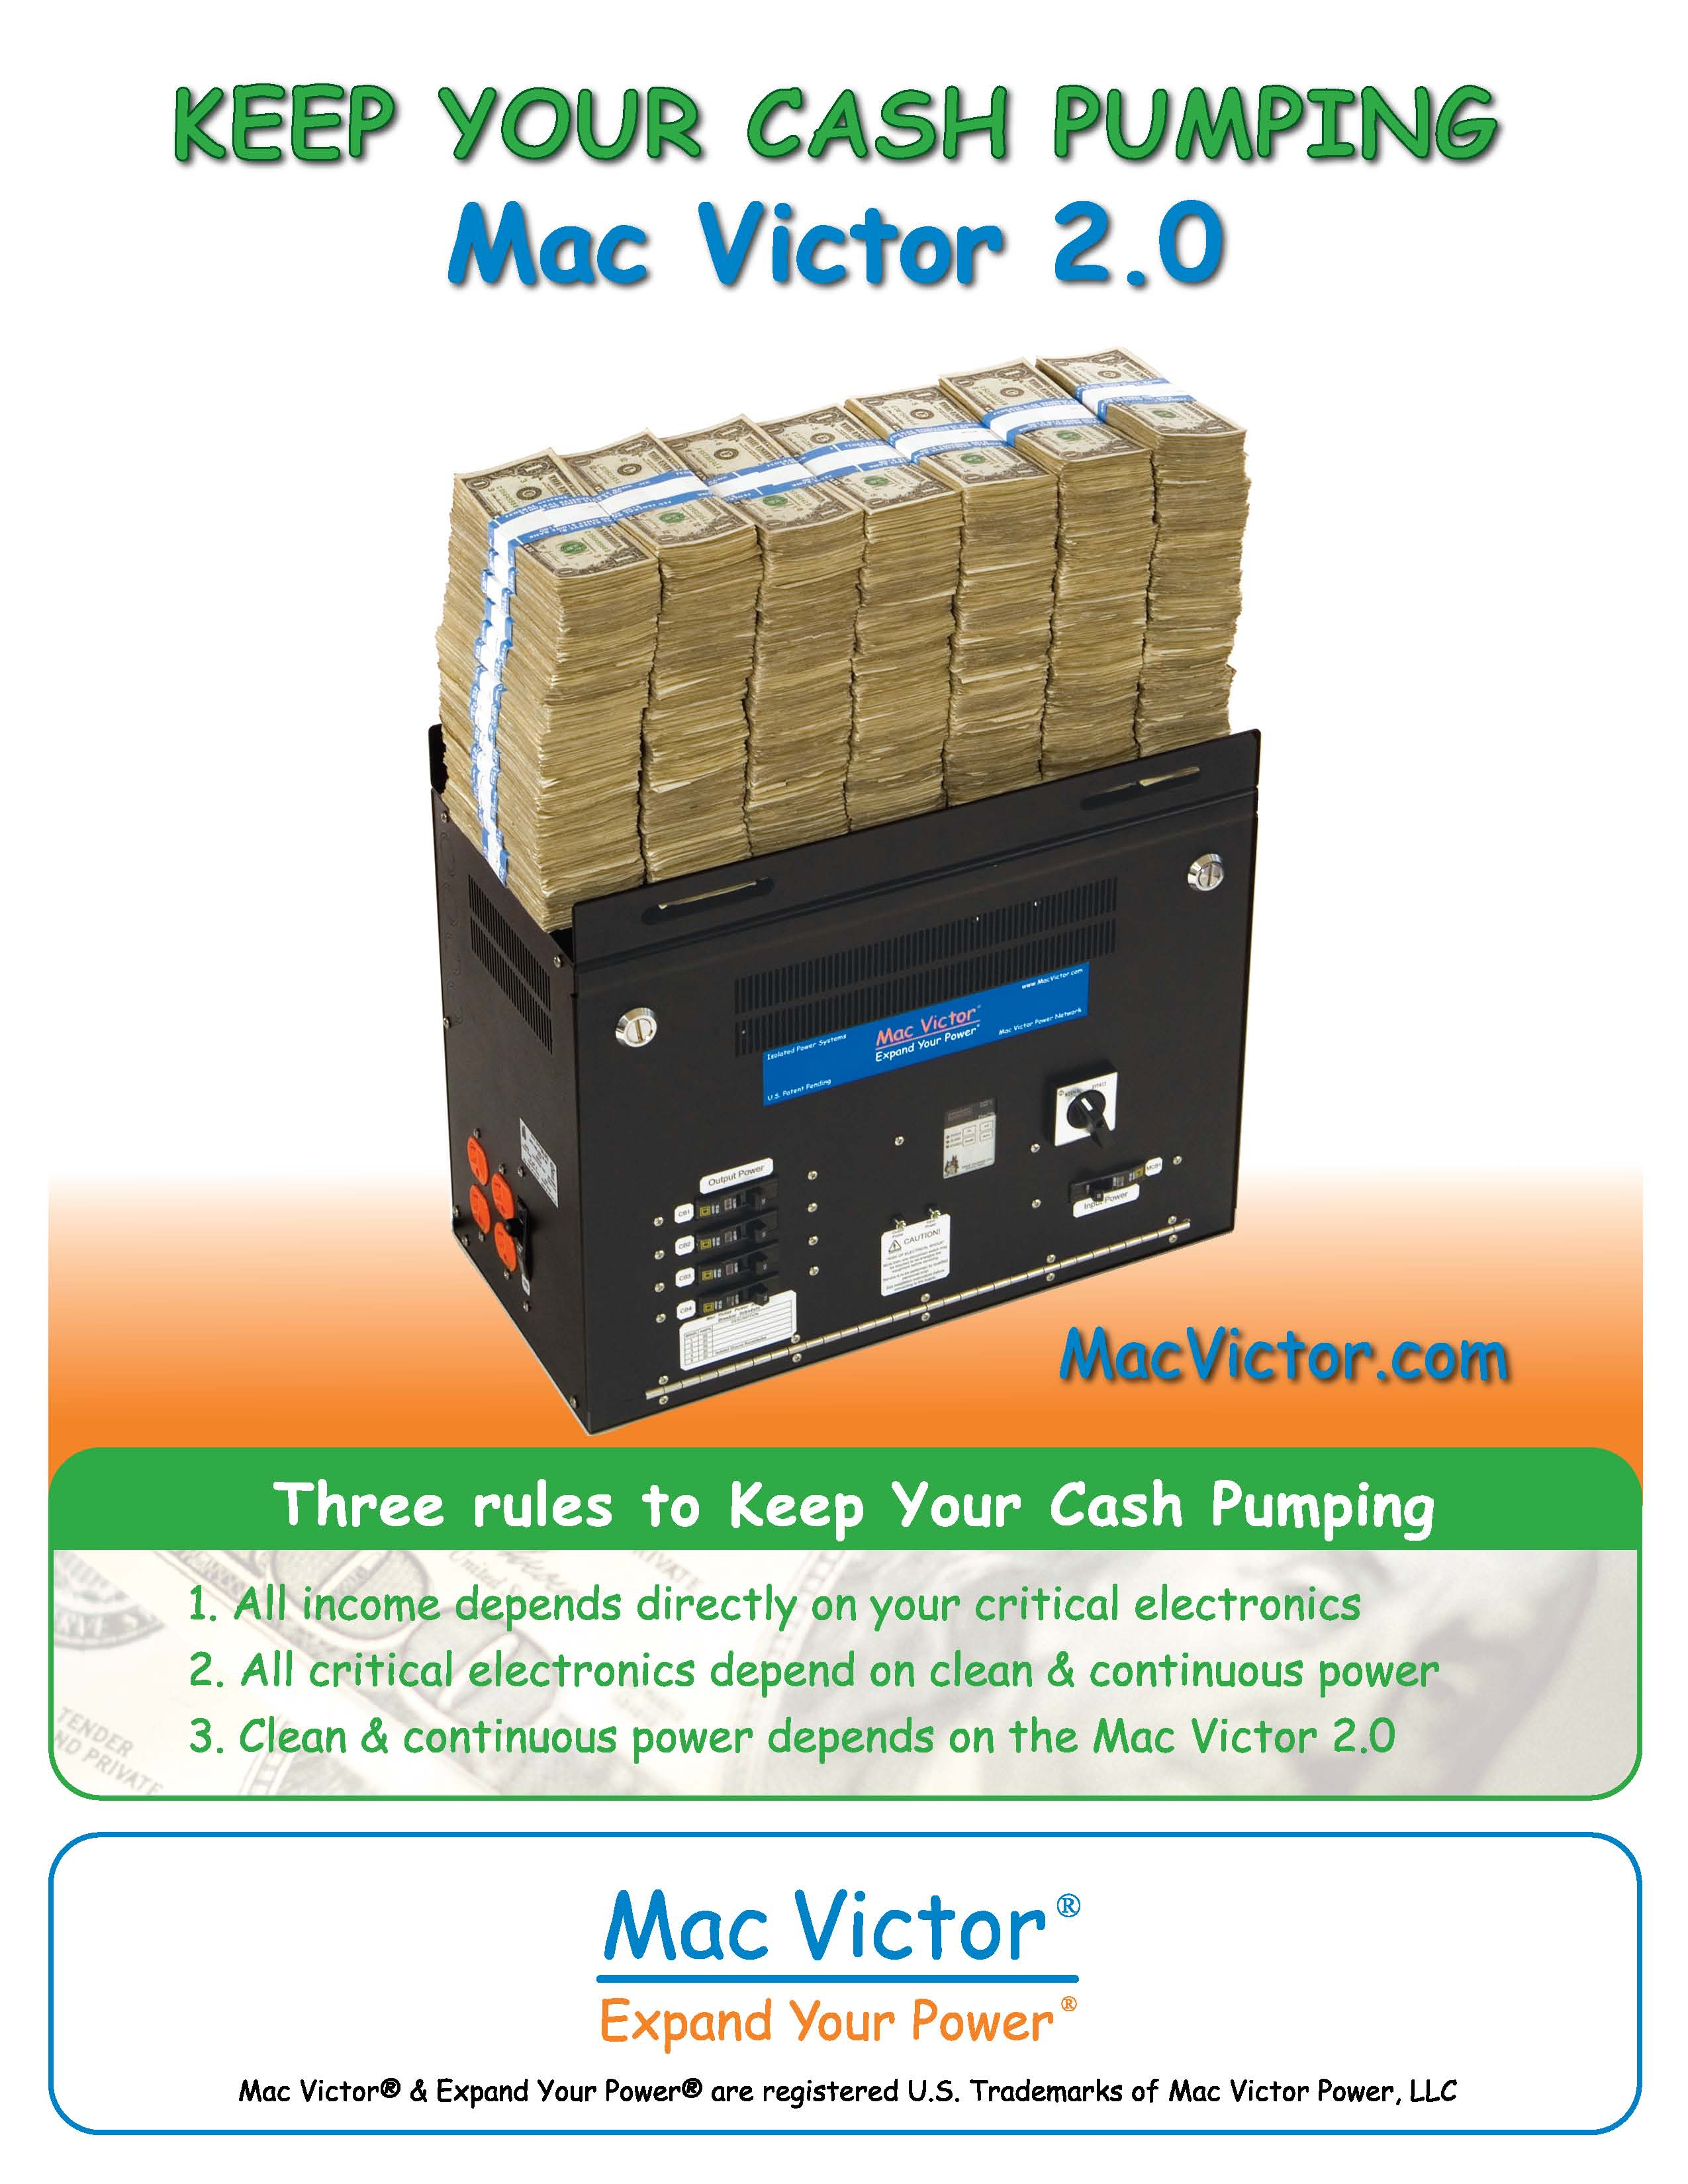 MacVictor2.0brochure020609highresolution_Page_1.jpg